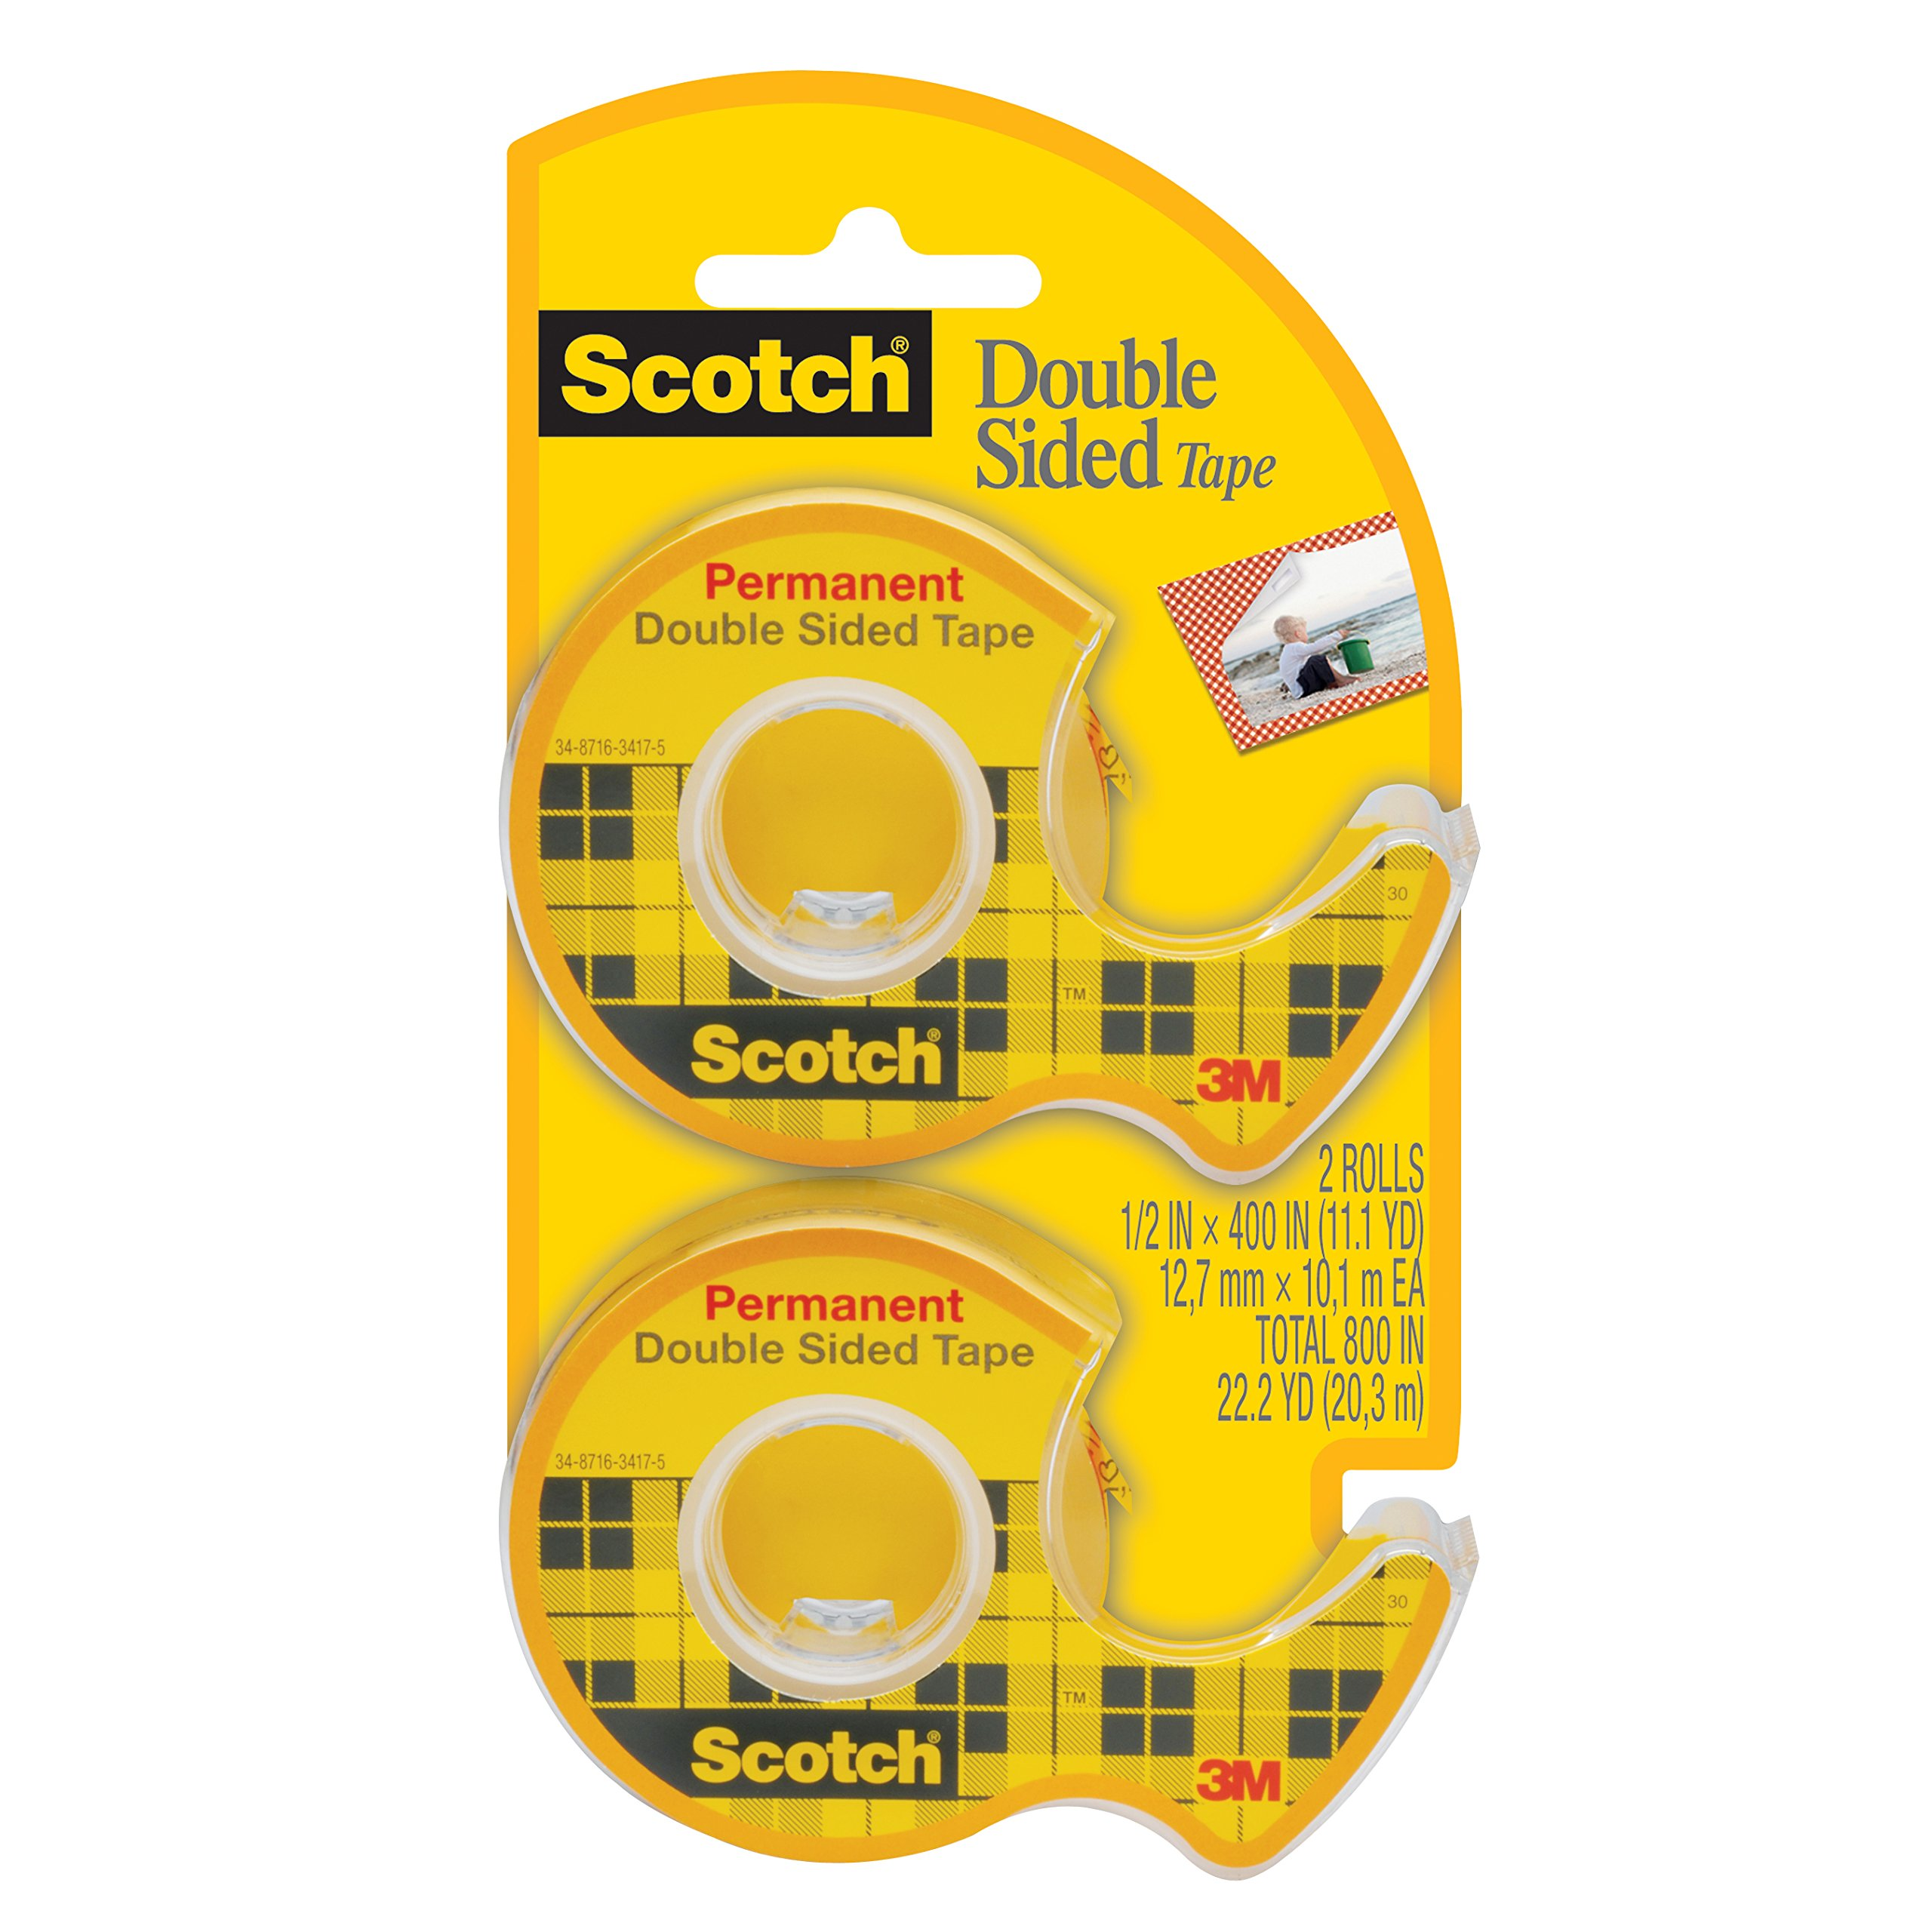 Scotch Double Sided Tape with Dispenser, Narrow Width, Engineered for Office and Home Use